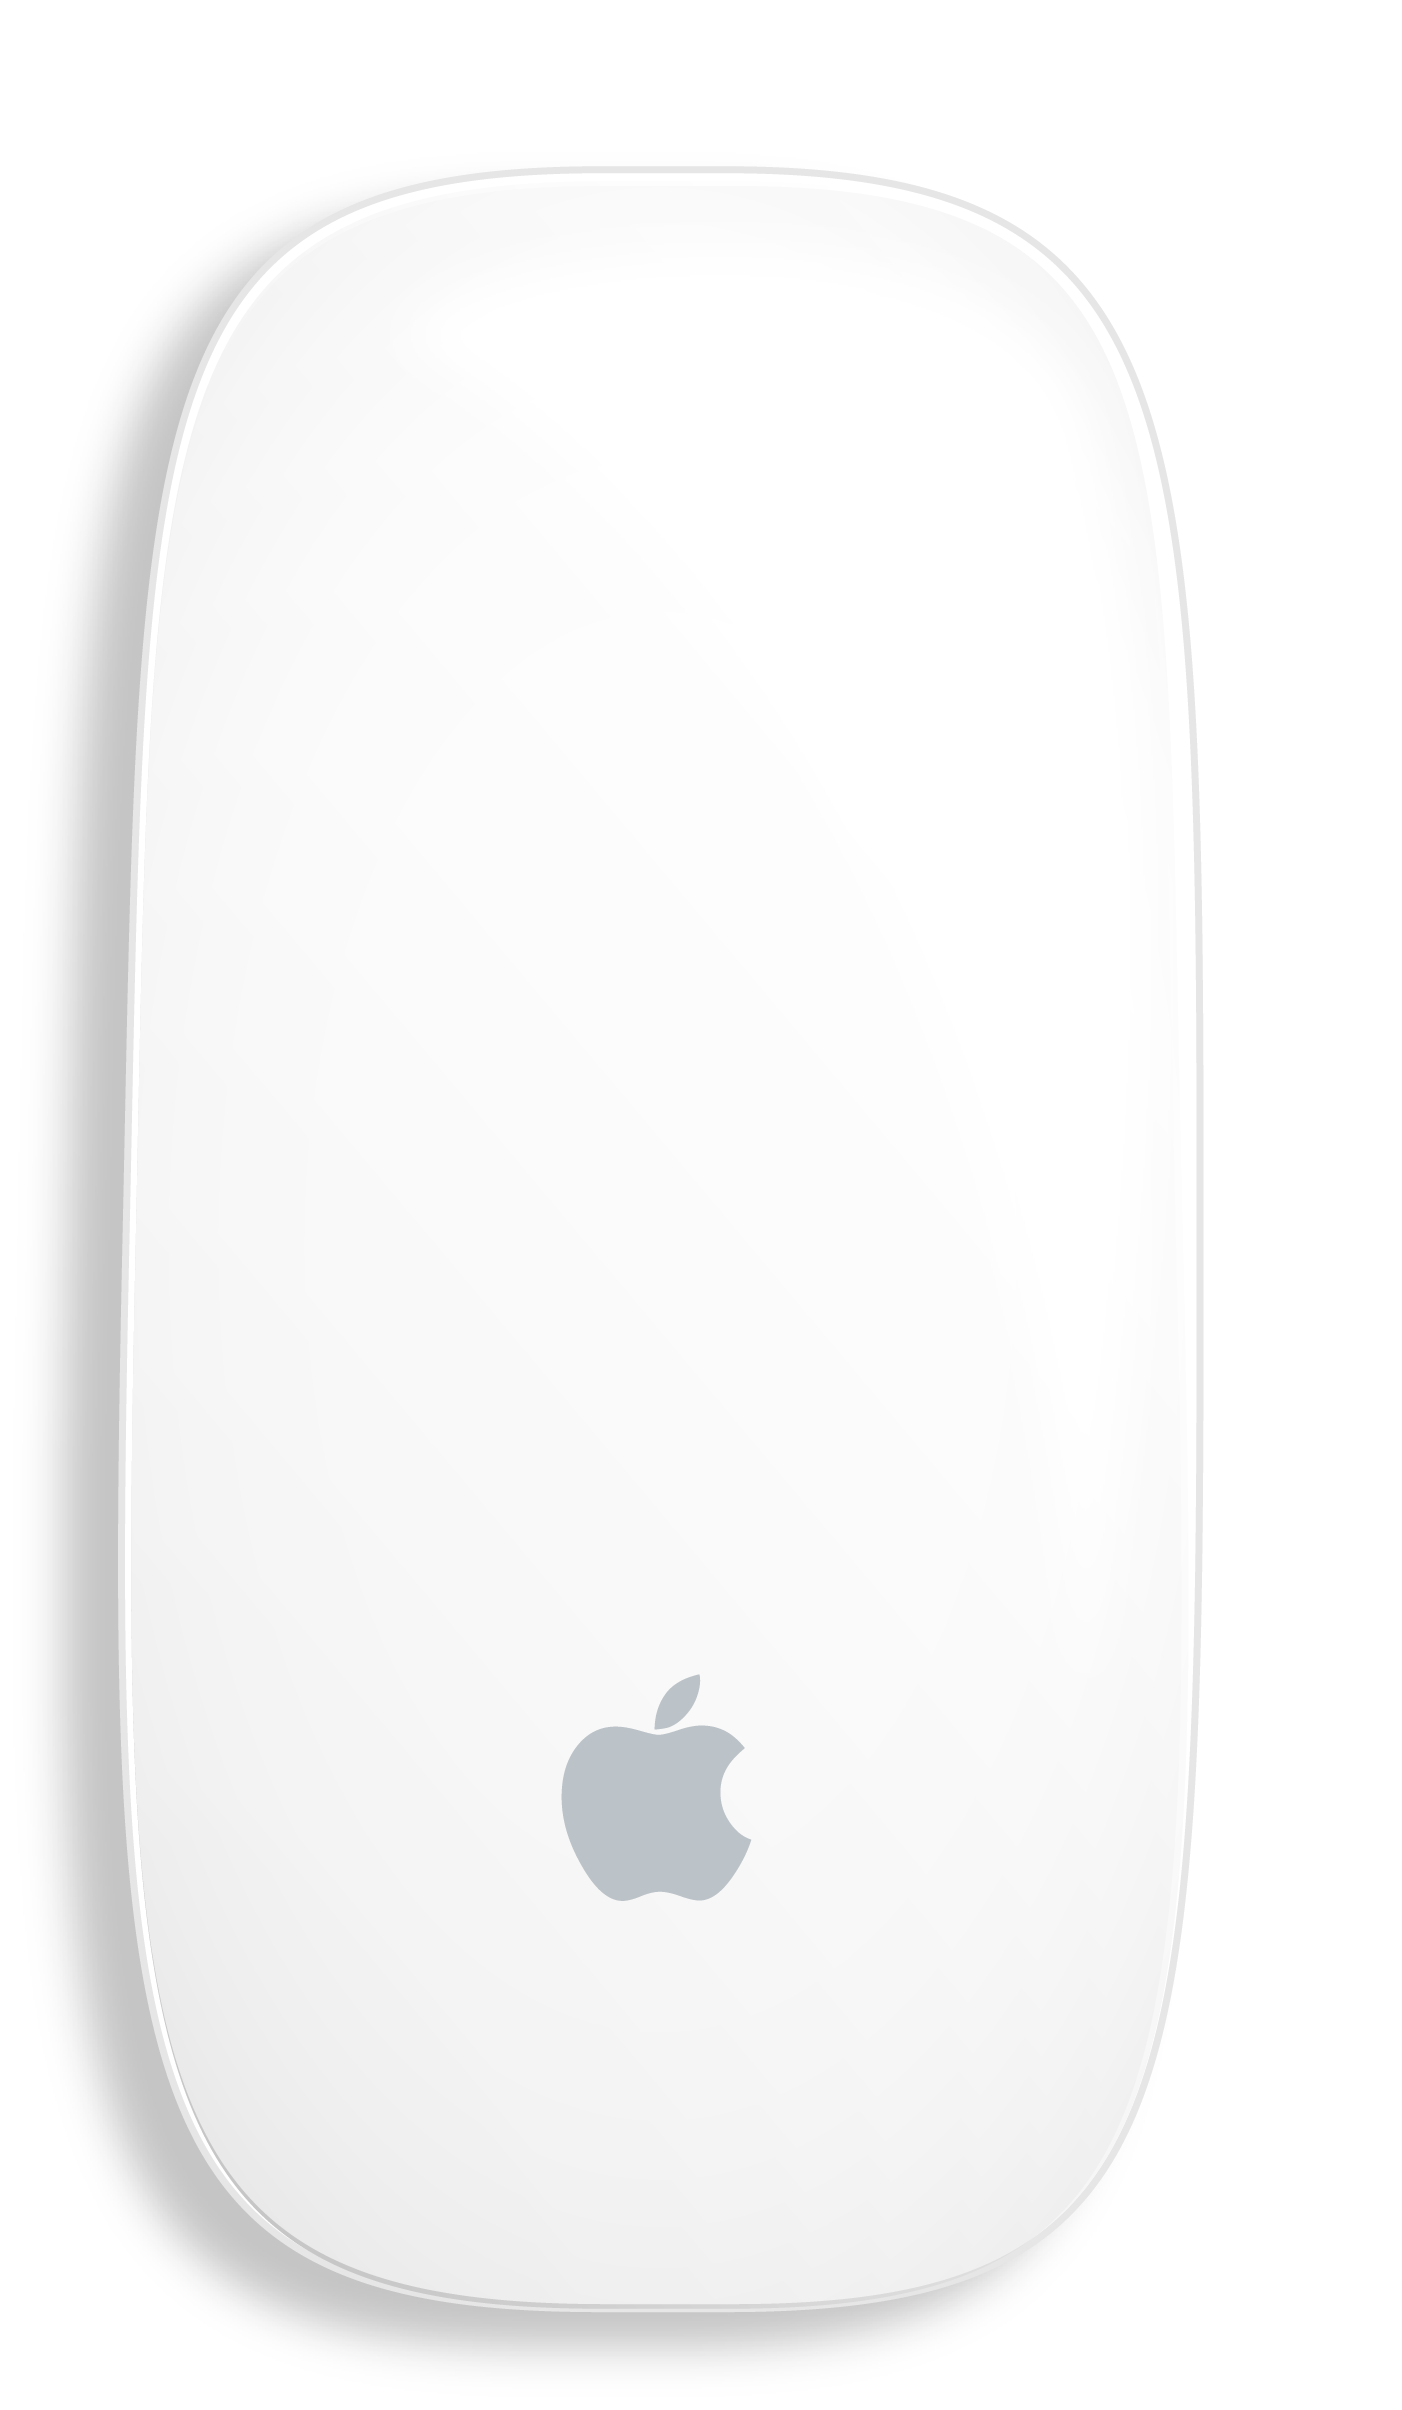 Apple magic mouse clipart jpg royalty free Magic Mouse by iwerk on DeviantArt jpg royalty free